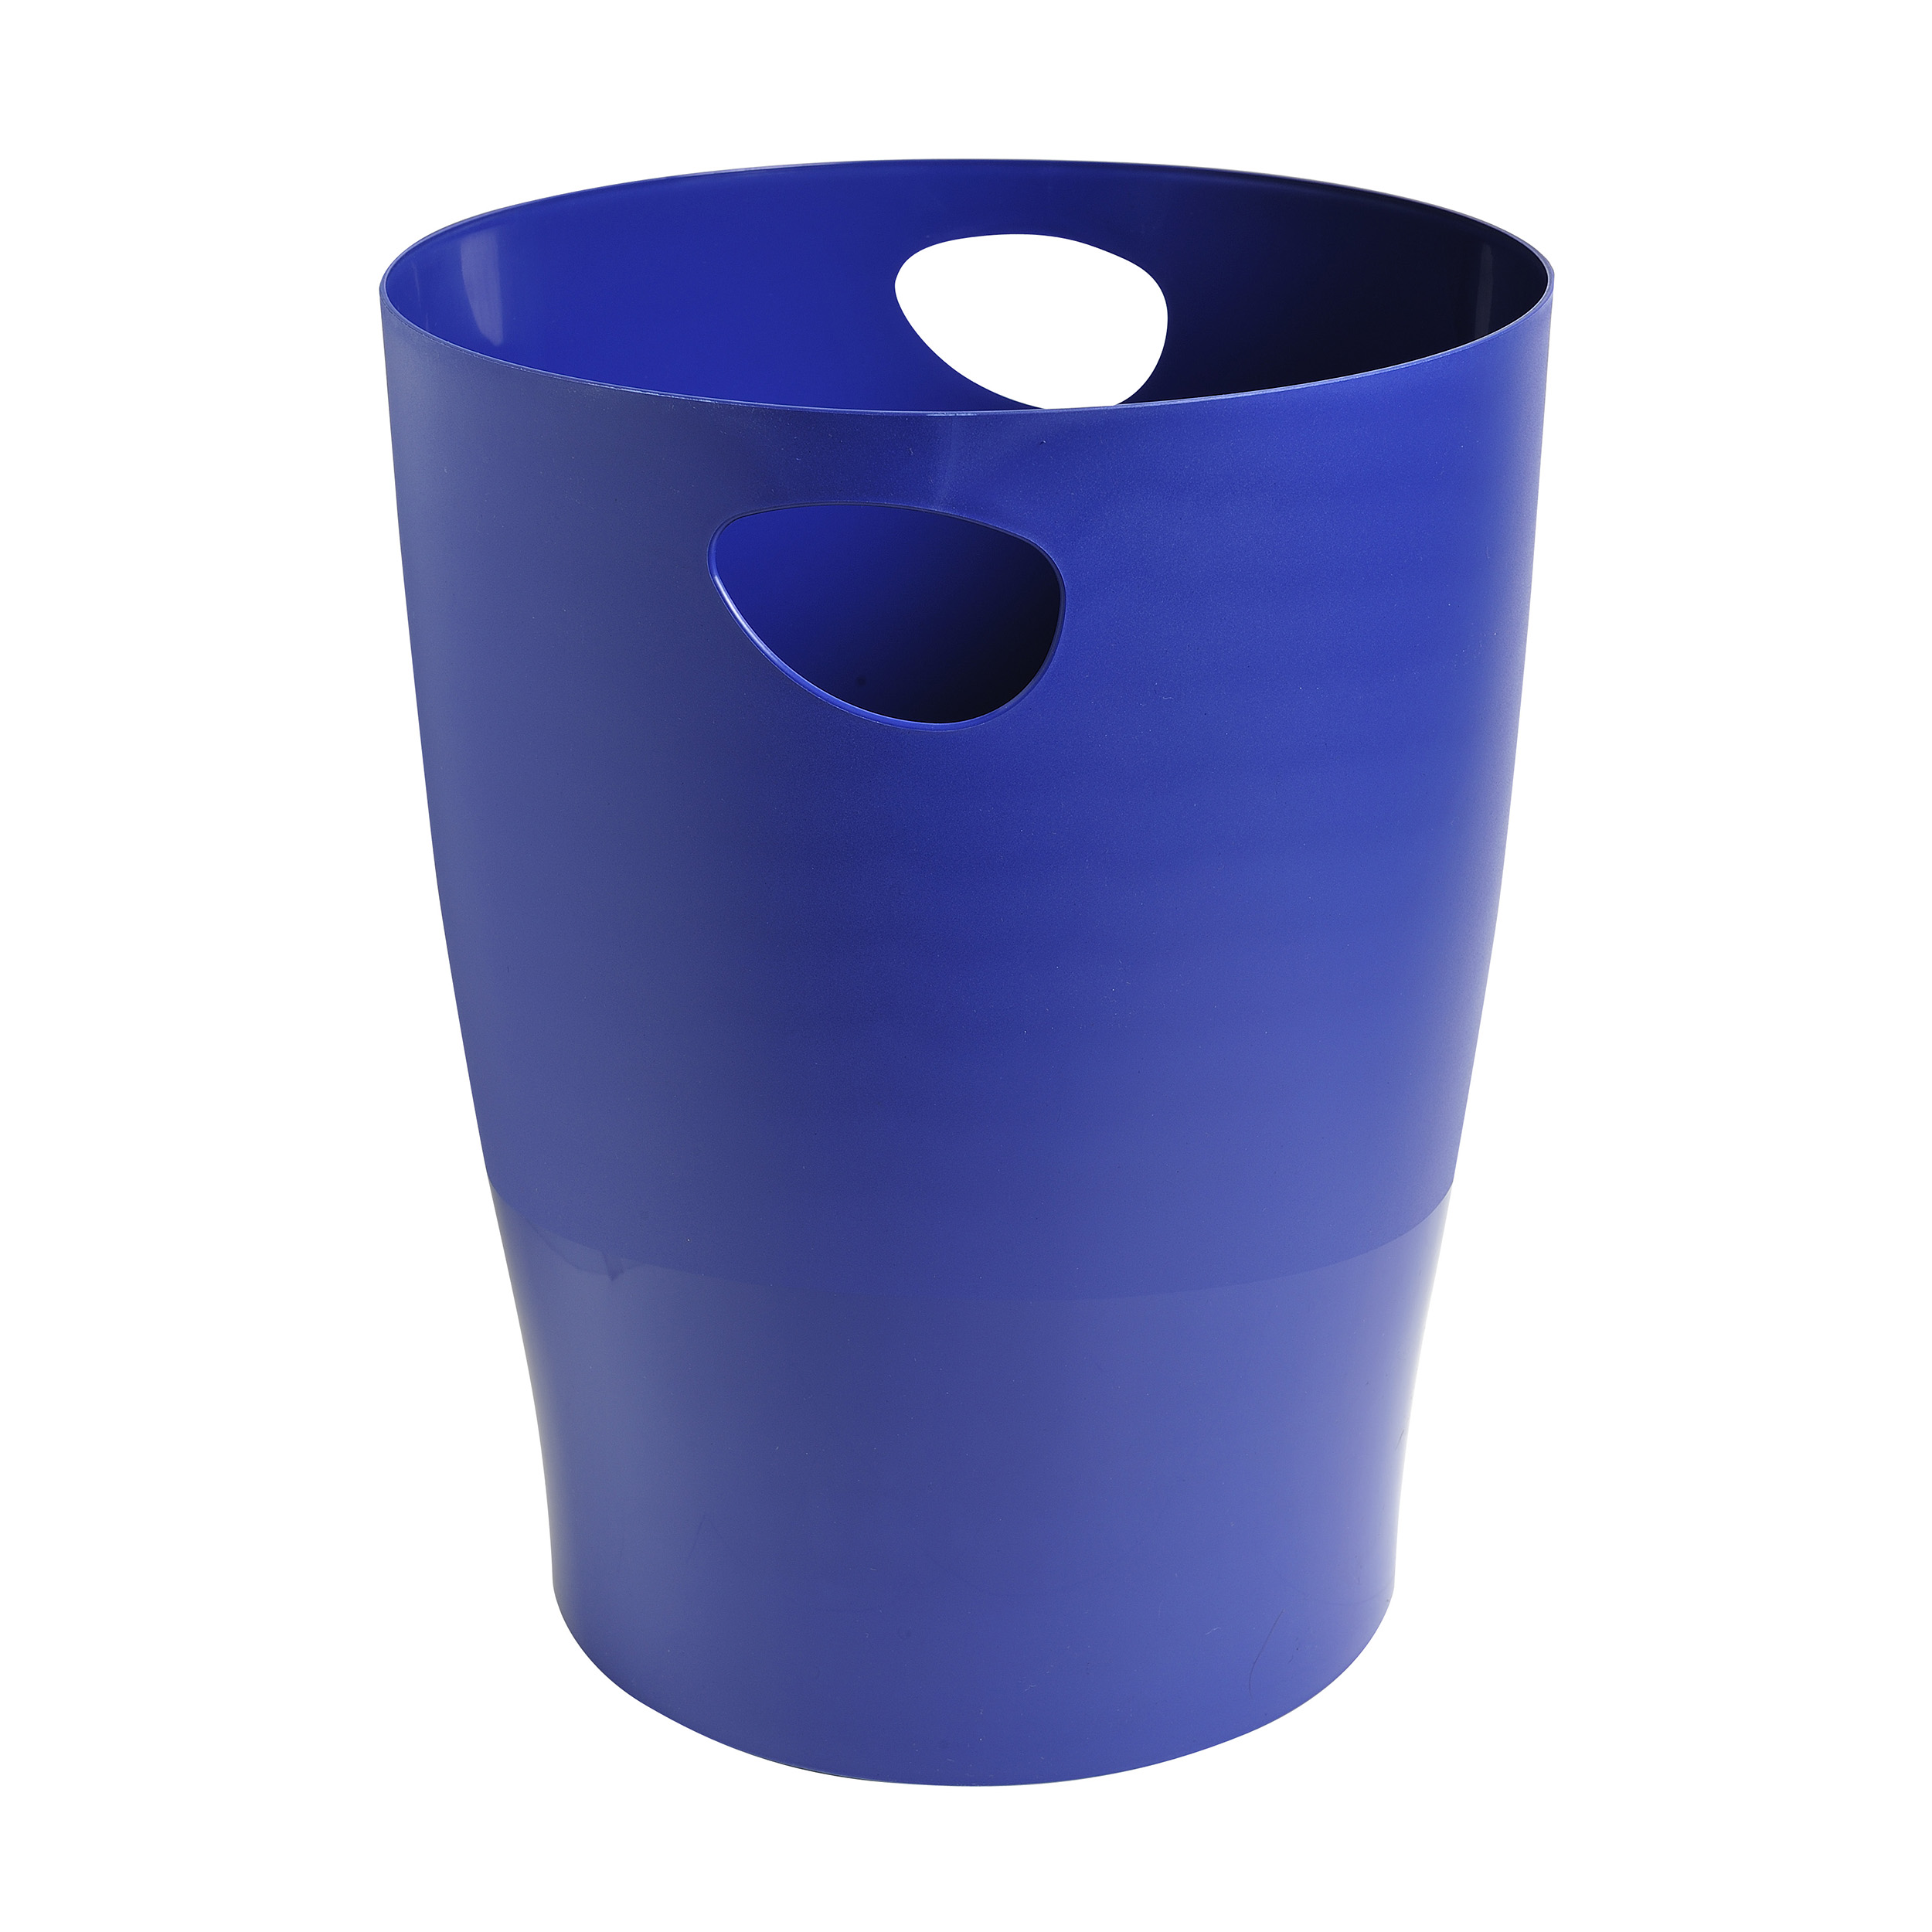 Non metallic bins Exacompta Forever Waste Bin 15L Recycled Plastic Dia 263xH335 Blue Ref 453104D